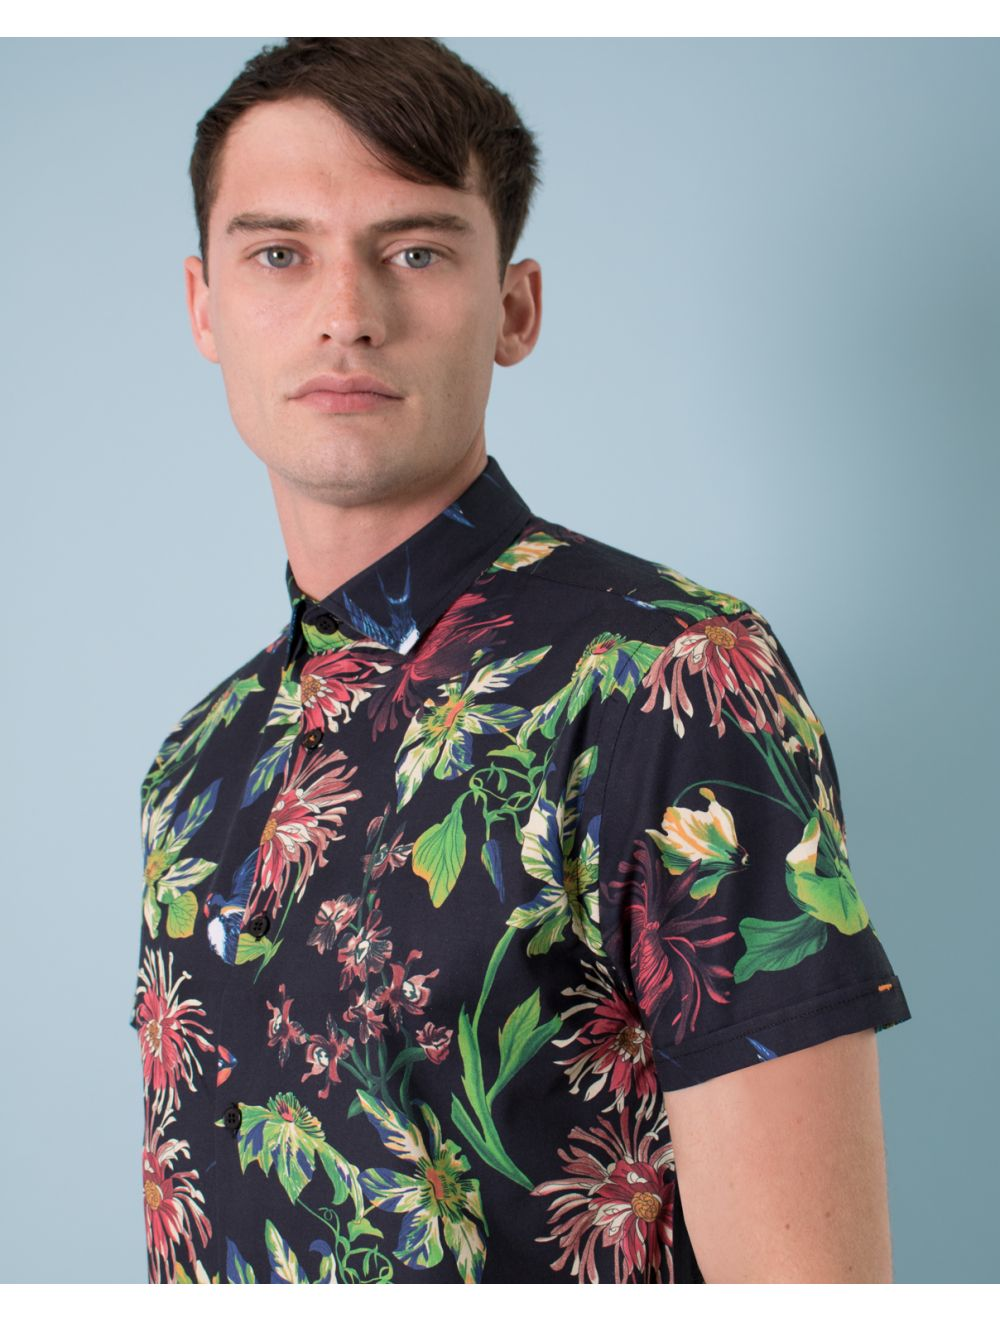 f986b395 Mens Limited Edition Tropical Floral Print Short Sleeve Shirt | Shop ...